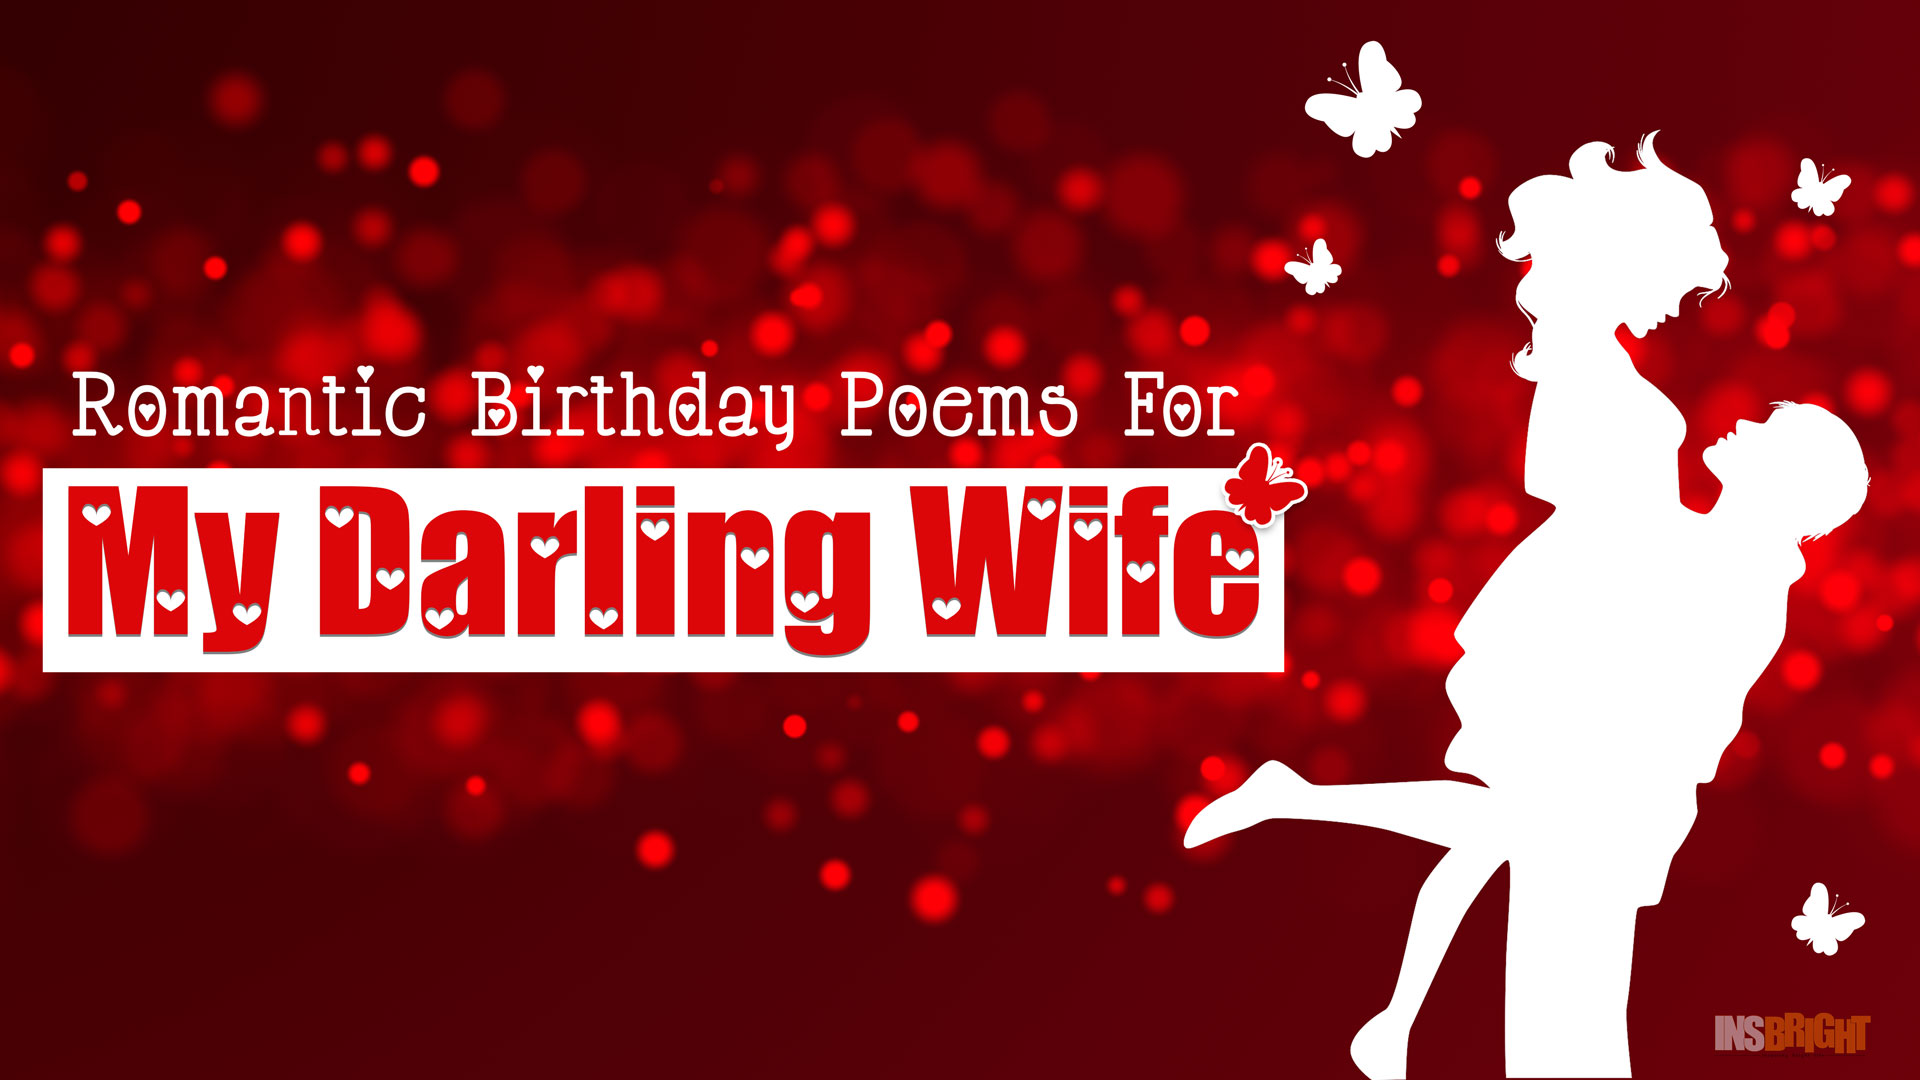 Beautiful Wallpaper Love Birthday - birthday-poetry-for-wife-insbright  Image_621583.jpg